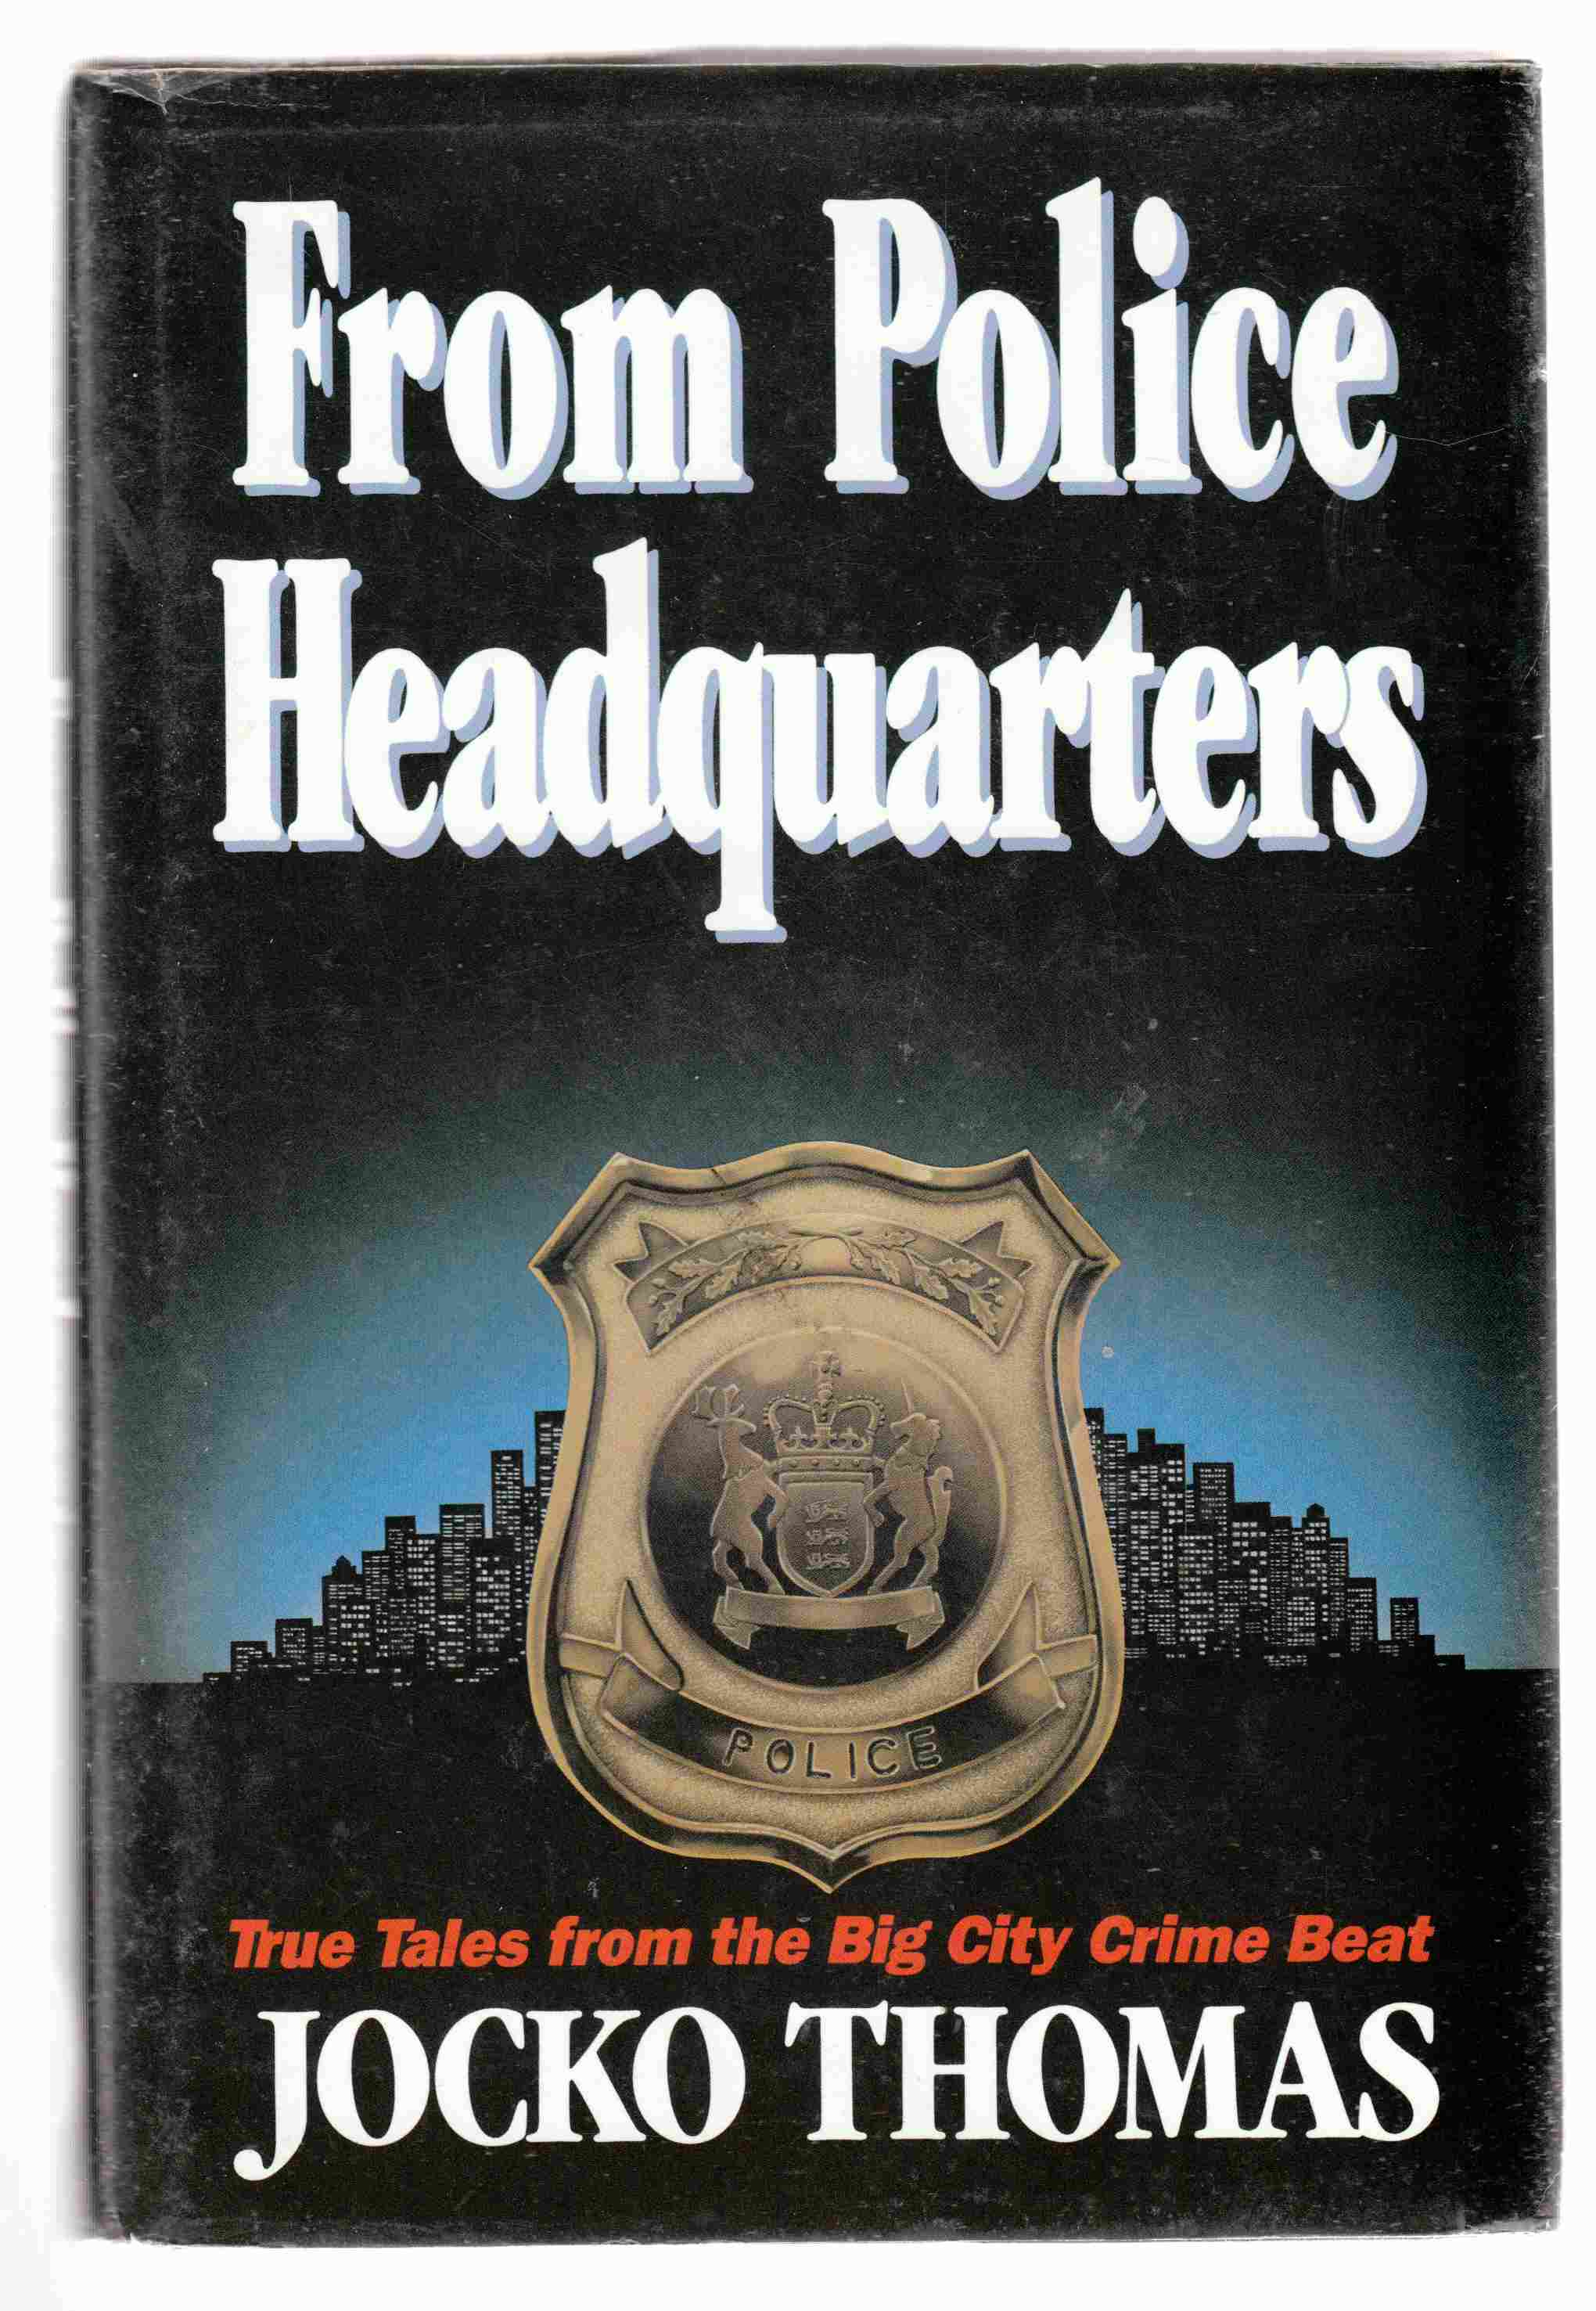 Image for From Police Headquarters True Tales from the Big City Crime Beat